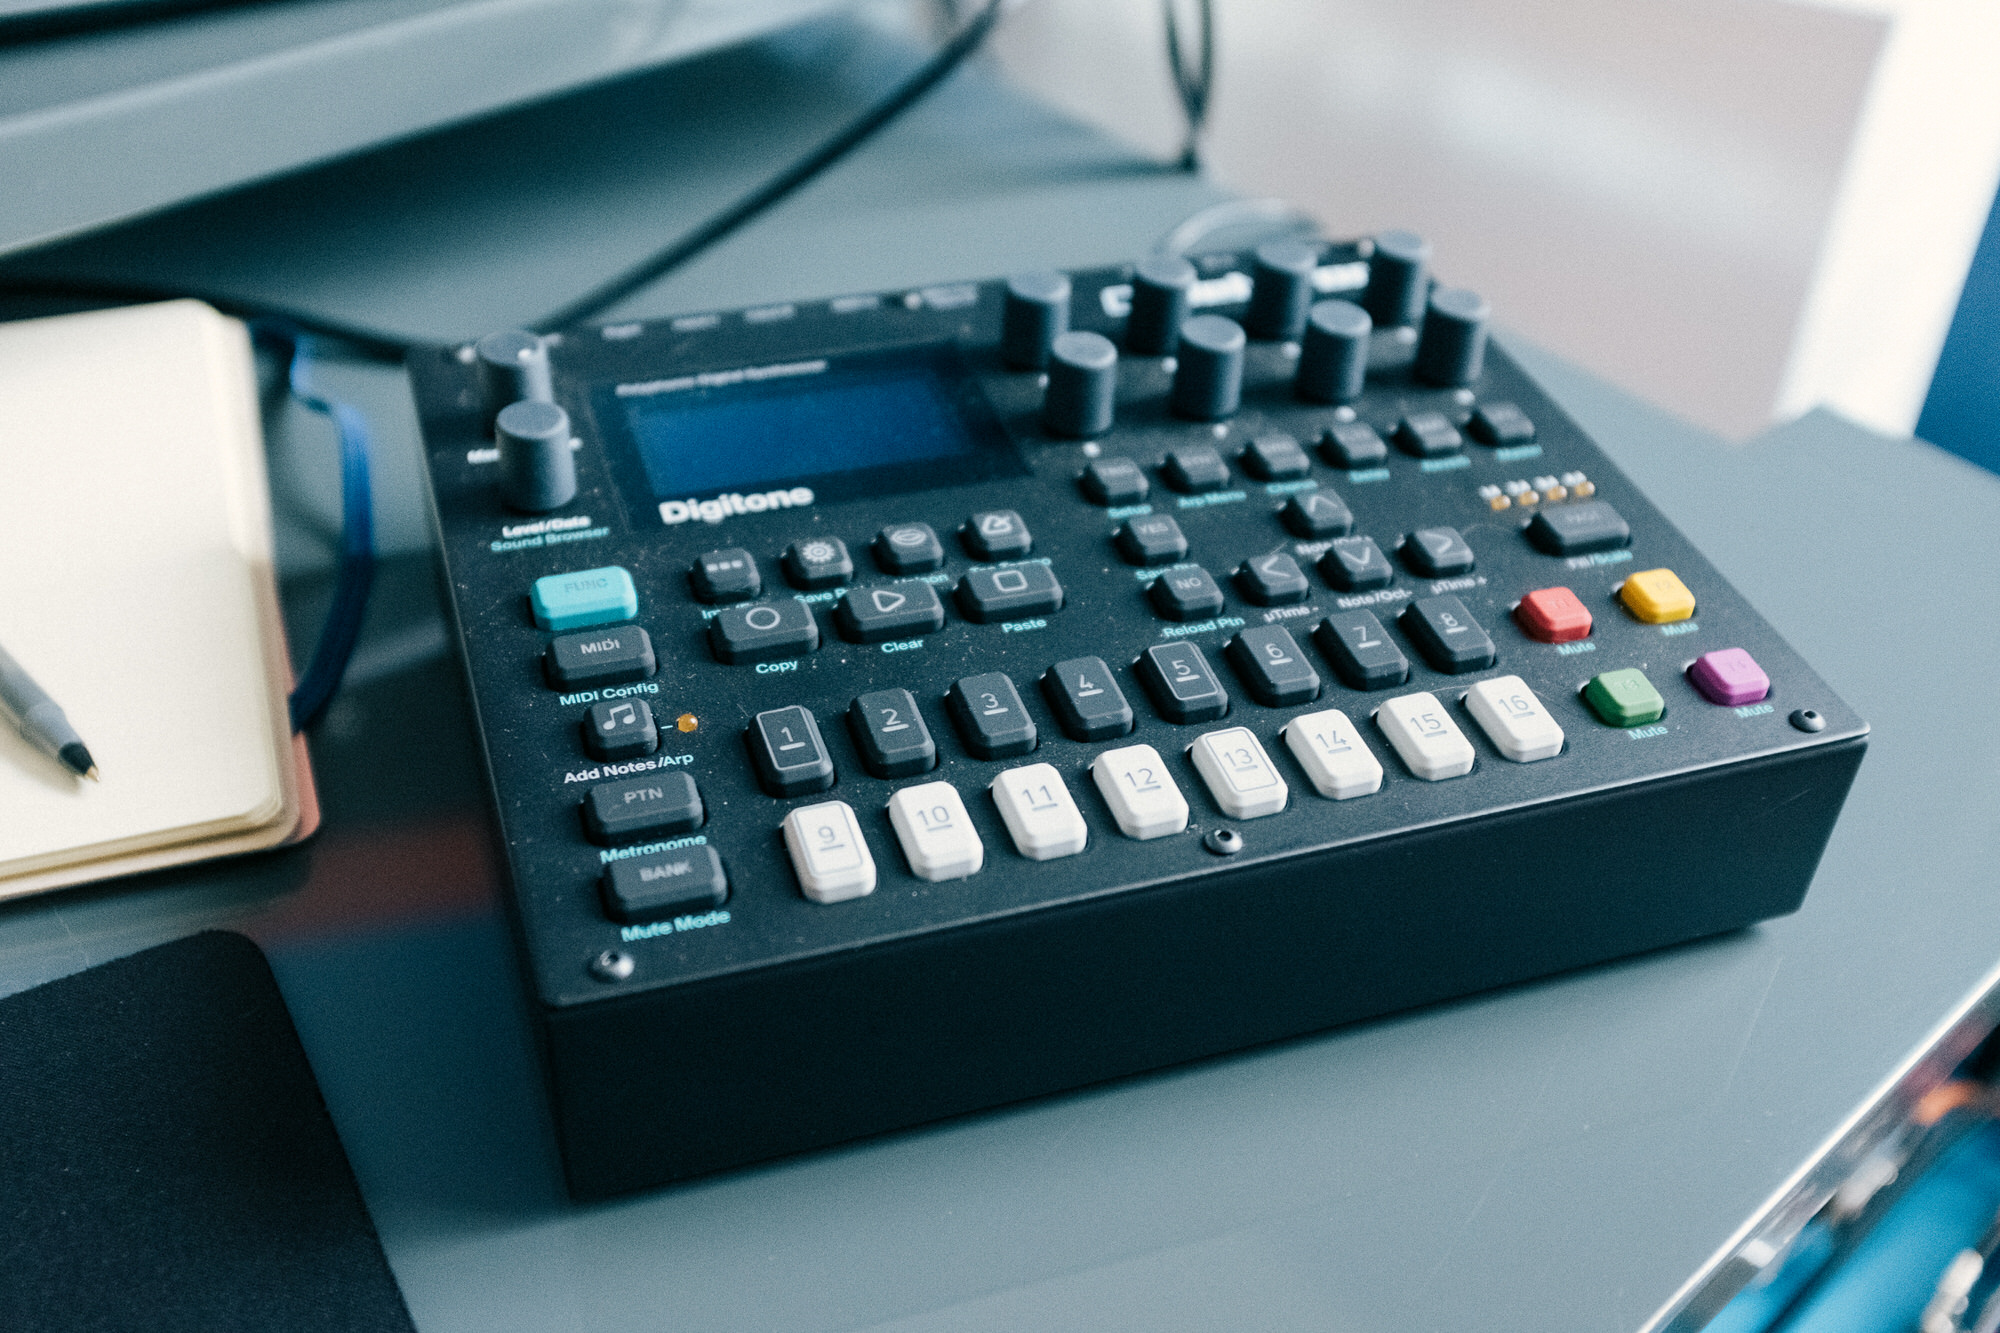 An image of the Elektron Digitone.